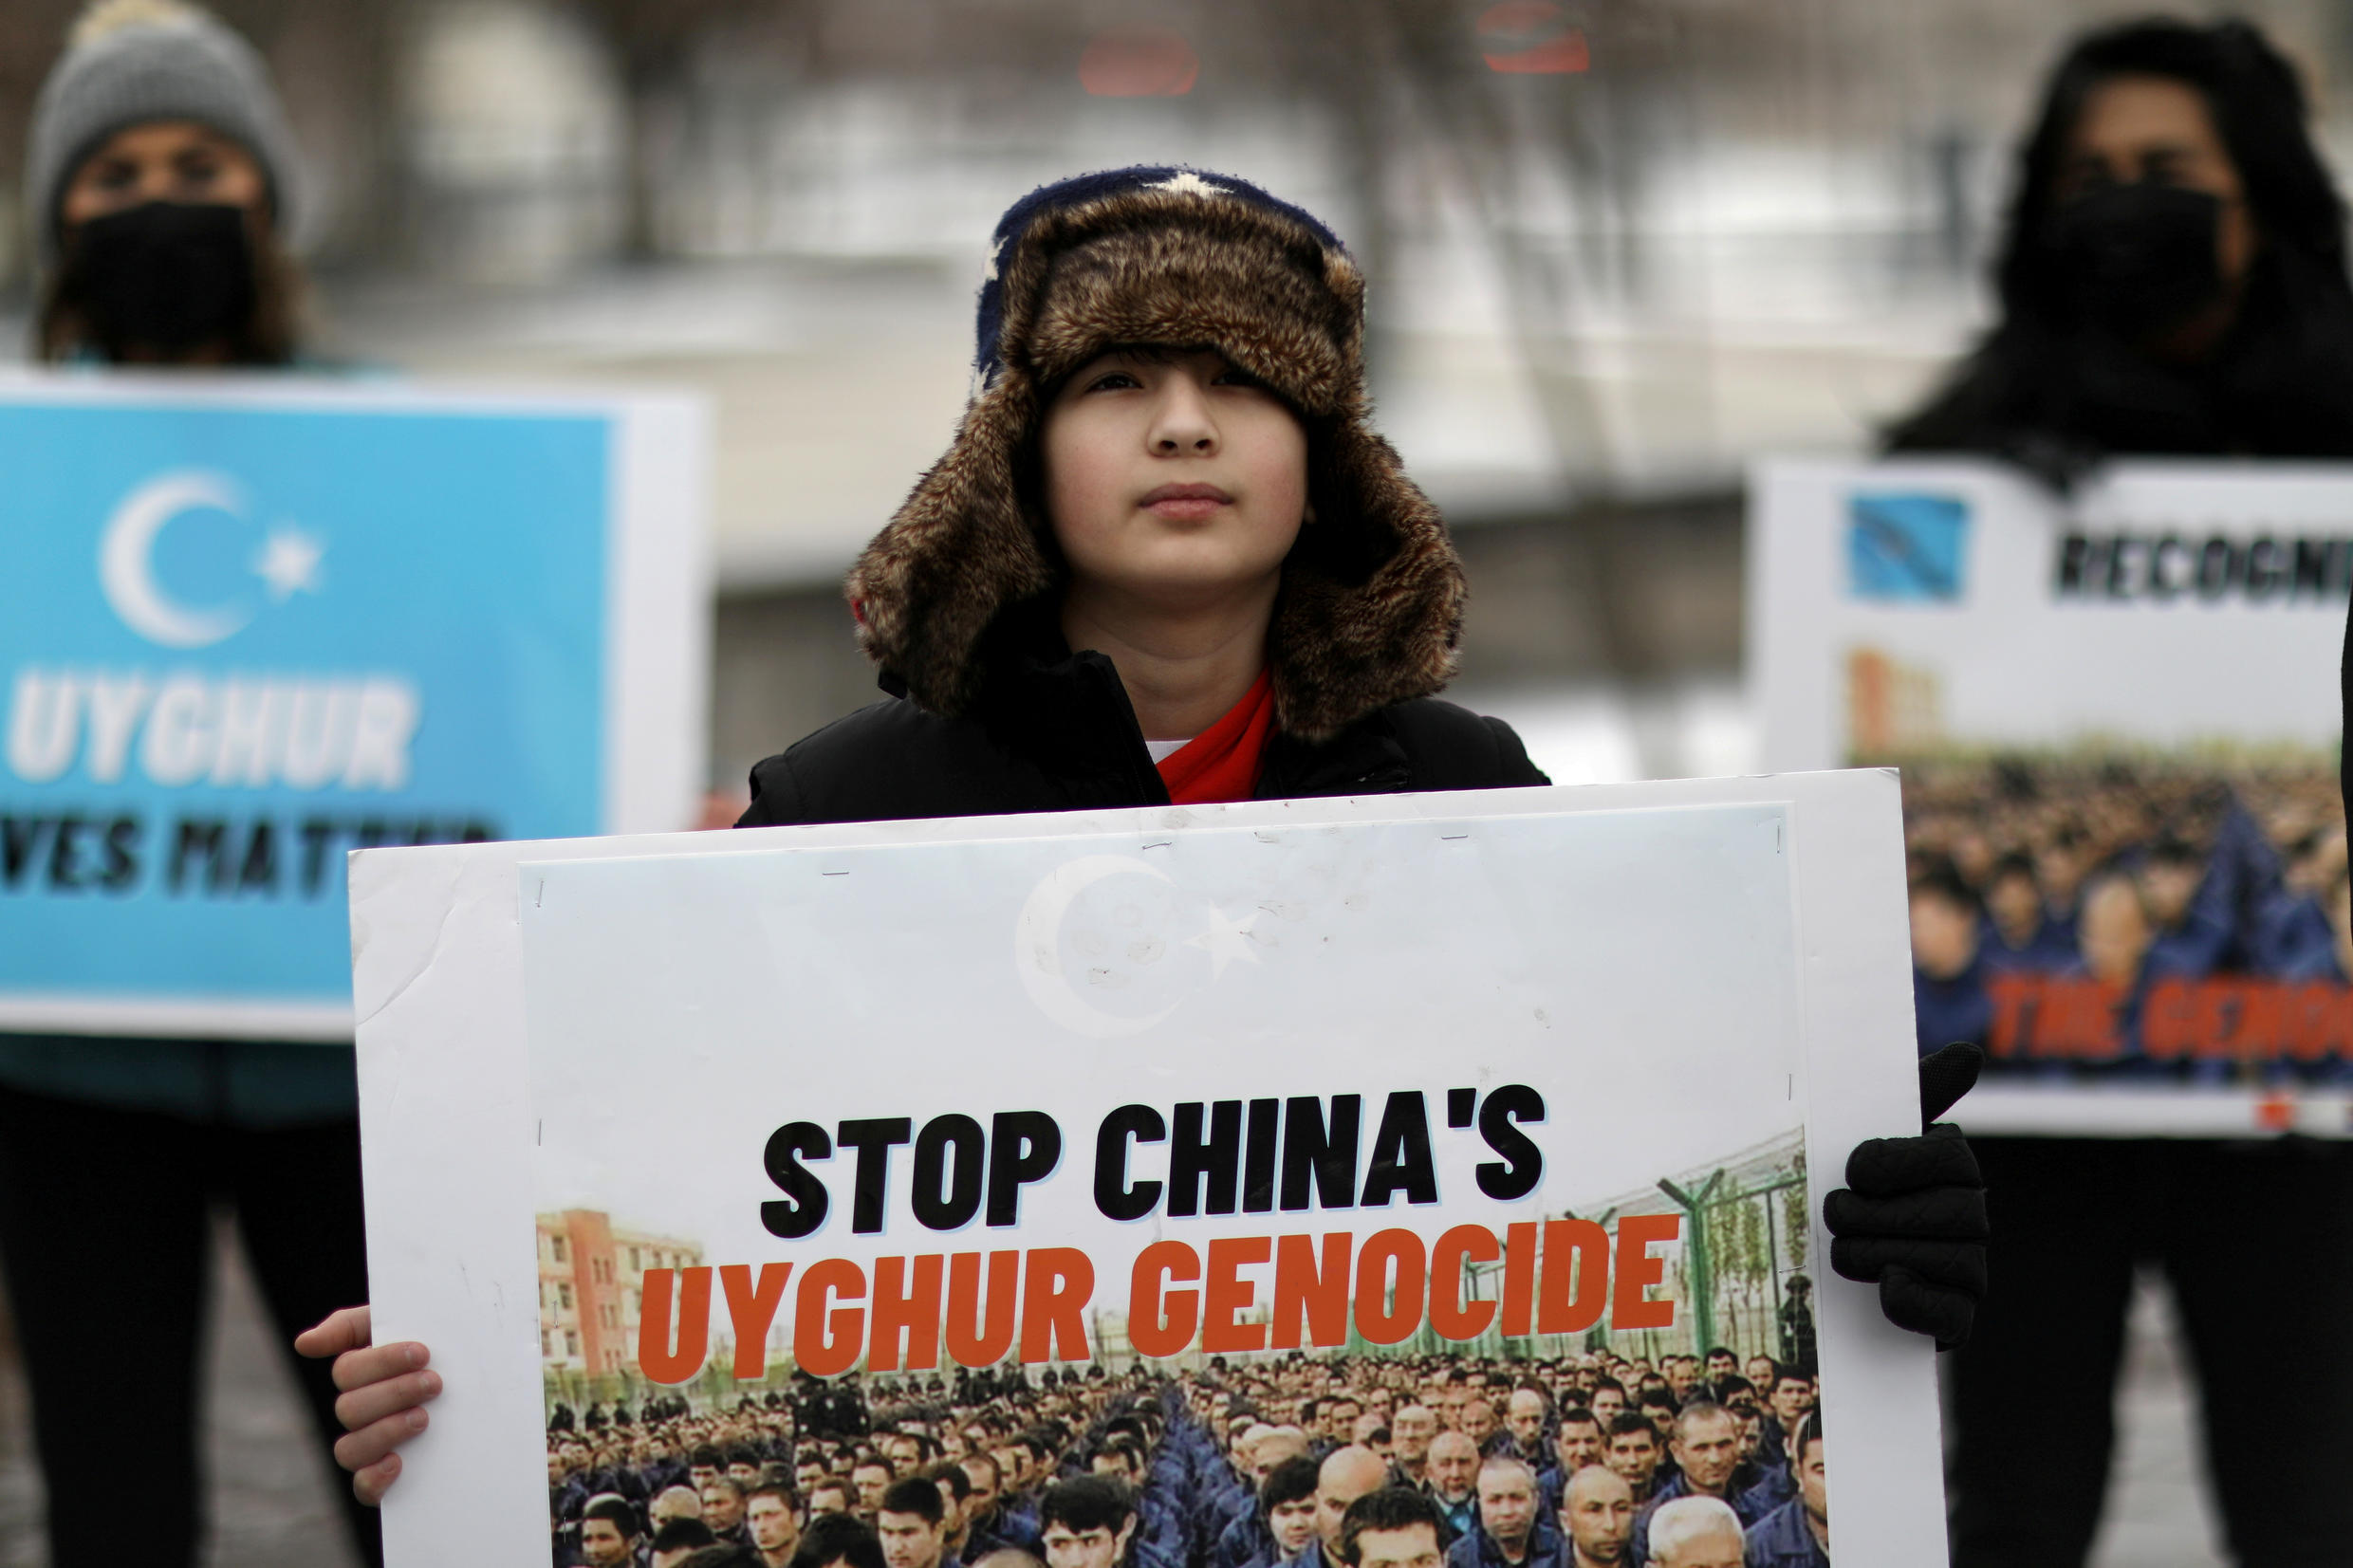 Chine - Ouighour - Canada - US - manifestation